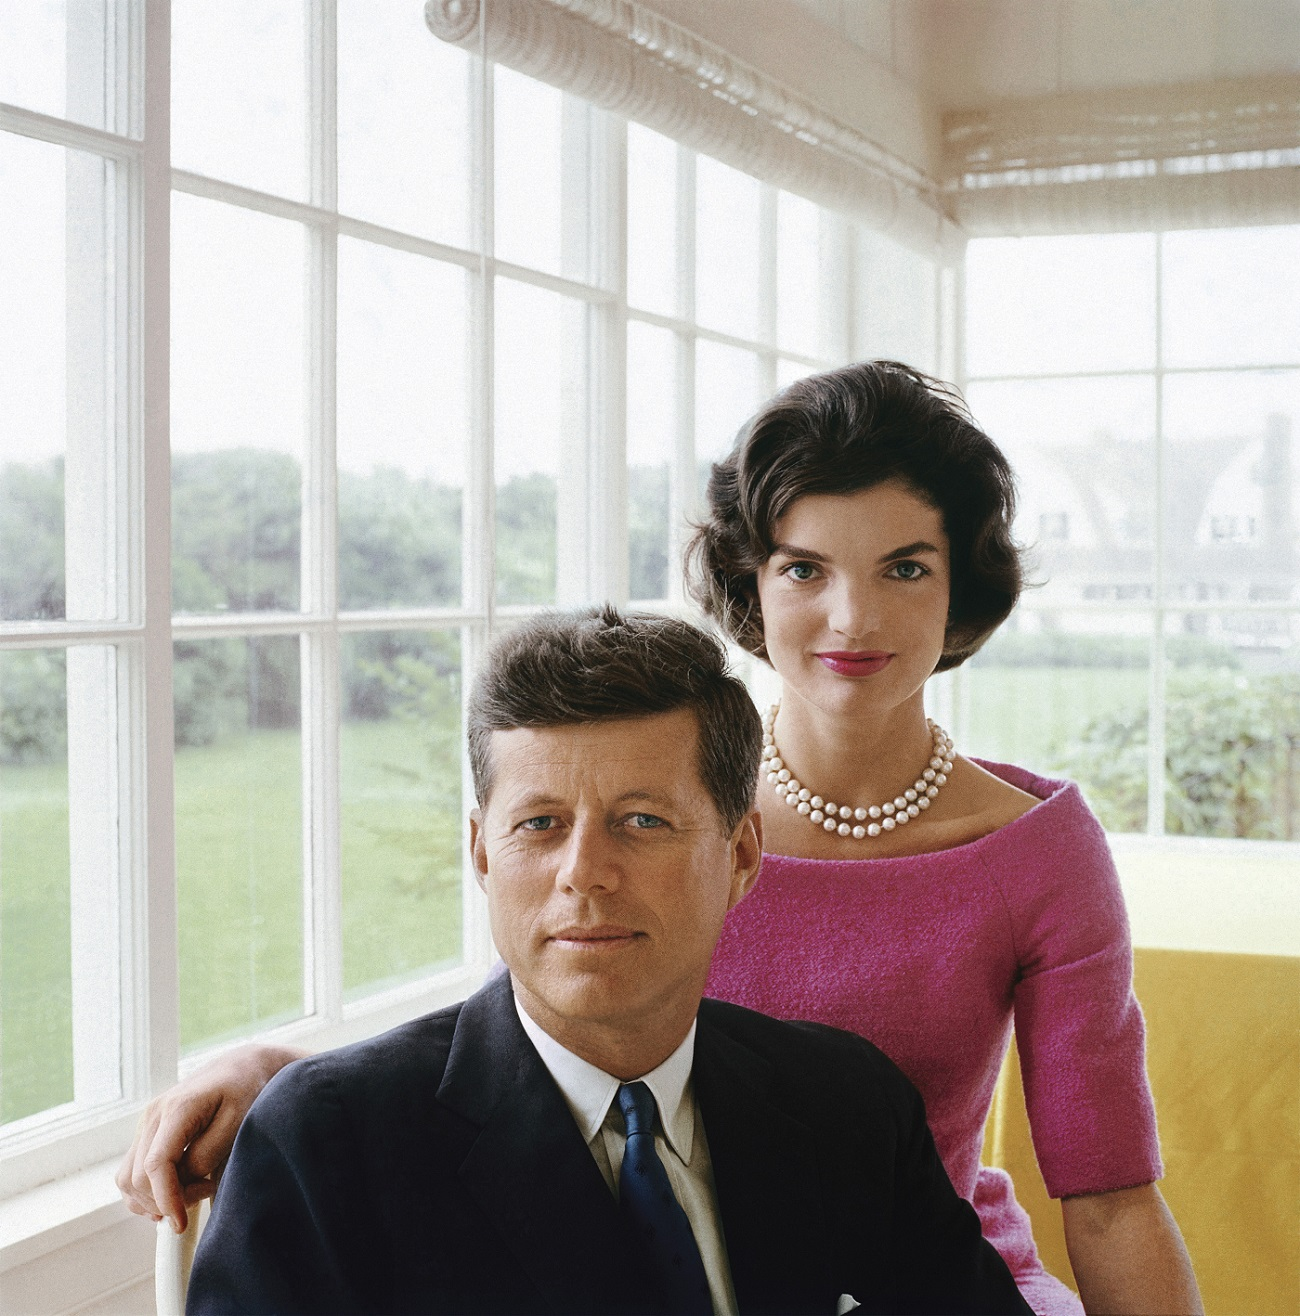 Keeping up with the Kennedys: An Elitist History - Fulfilling the Dream